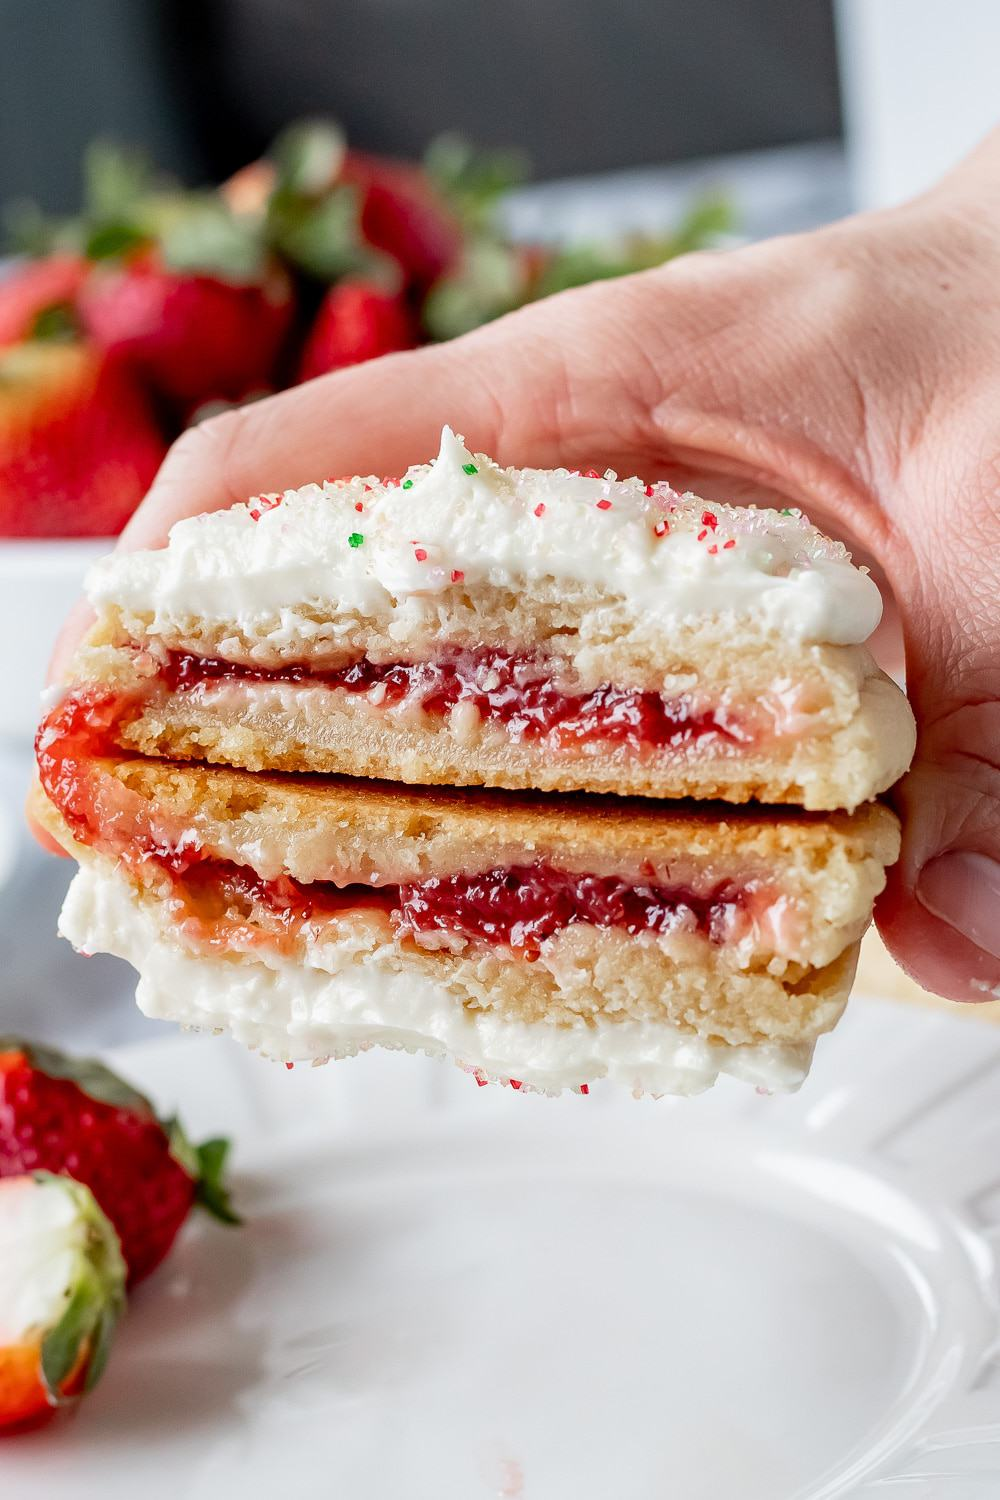 2 halves of strawberry pop tart cookie in a hand above a white plate with strawberries.